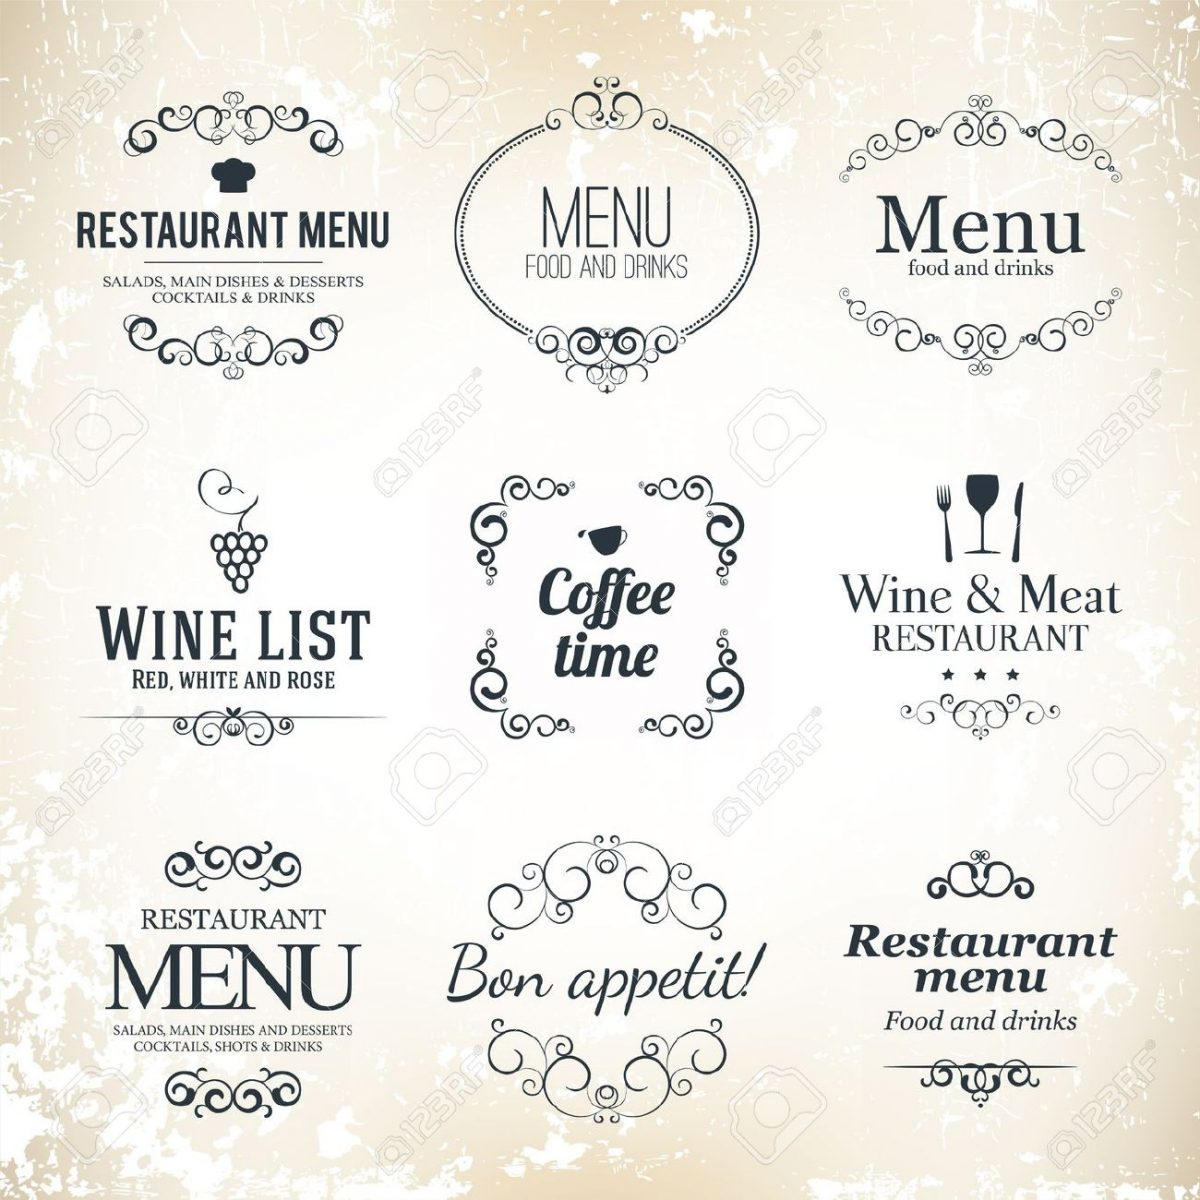 17989332-label-set-for-restaurant-menu-design-vintage-min